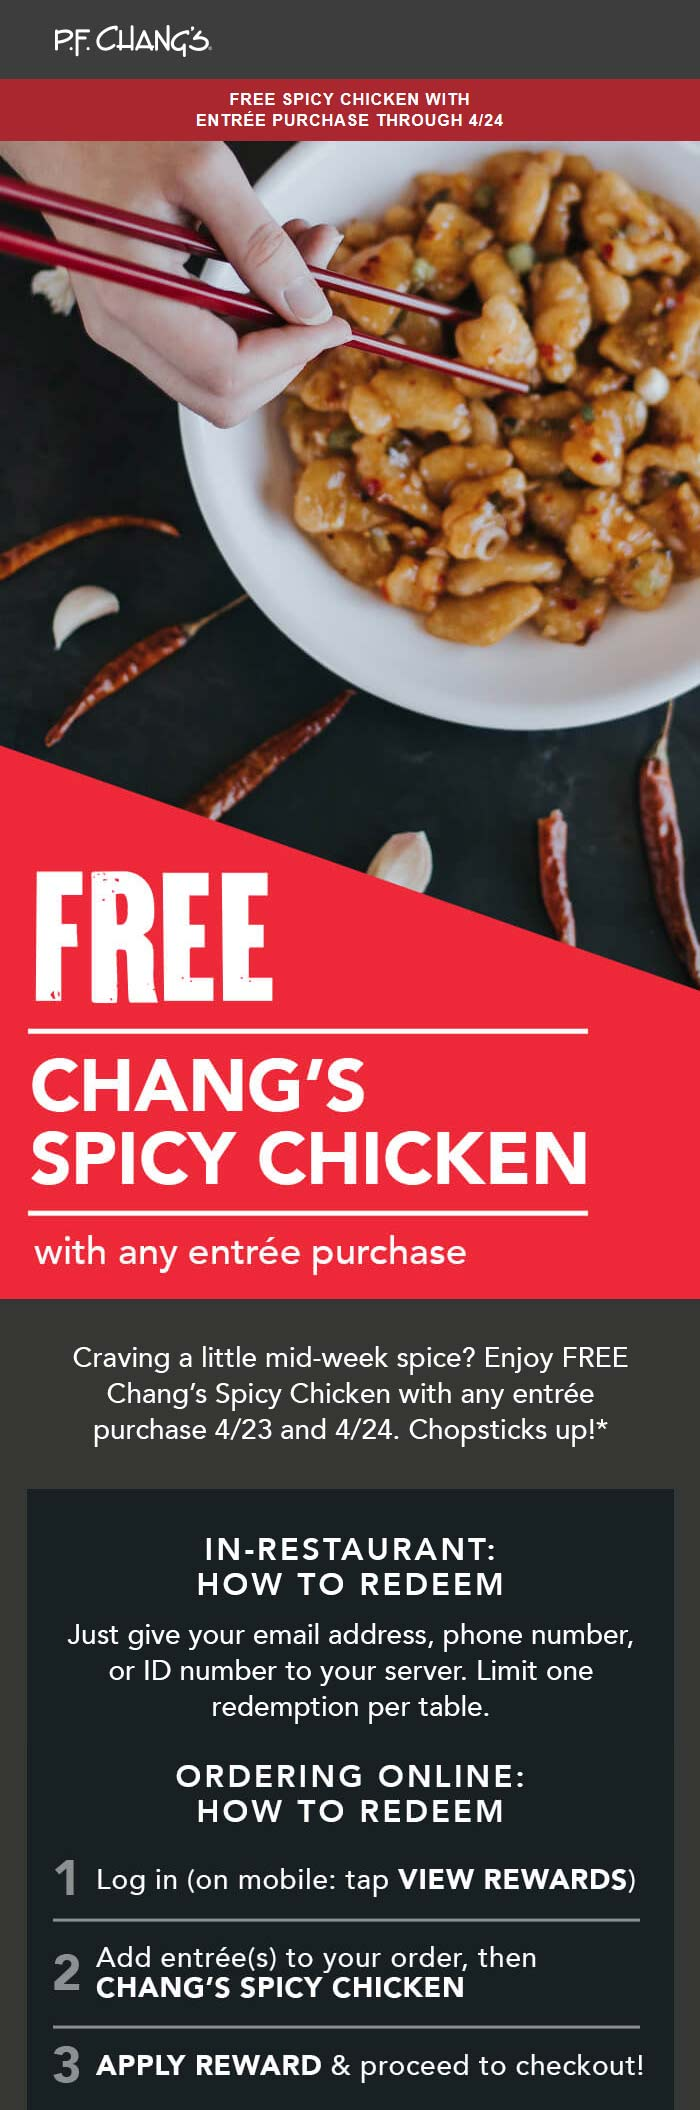 P.F. Changs Coupon May 2019 Free spicy chicken with your entree today at P.F. Changs